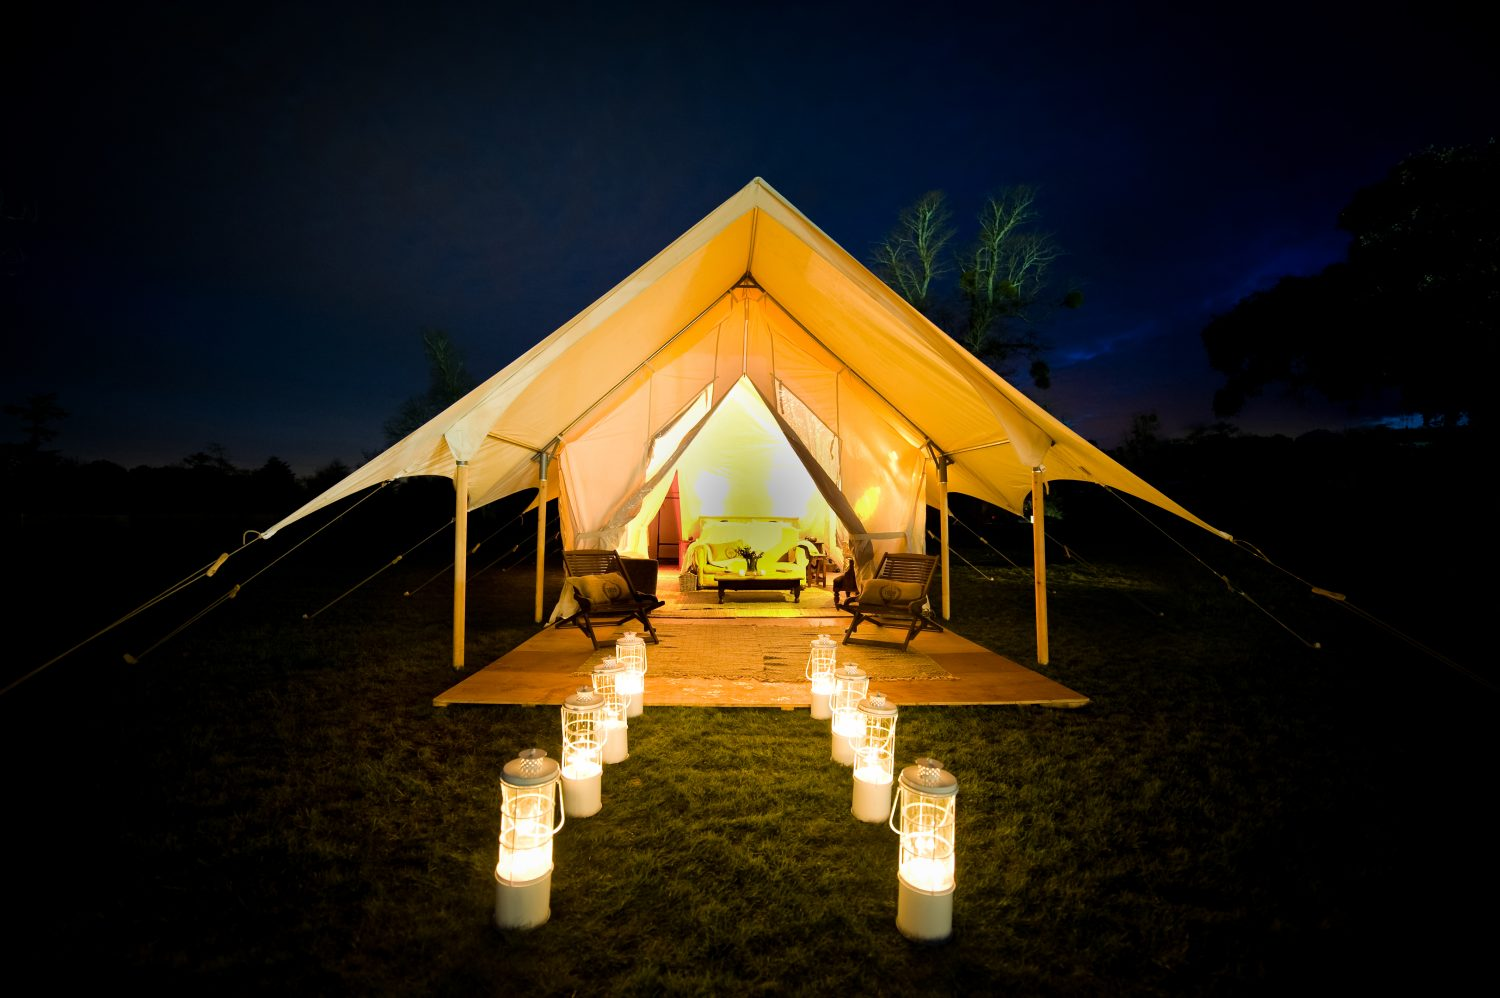 You can stay at a pop-up hotel at LoveFit Festival in July. Image: LoveFit Festival